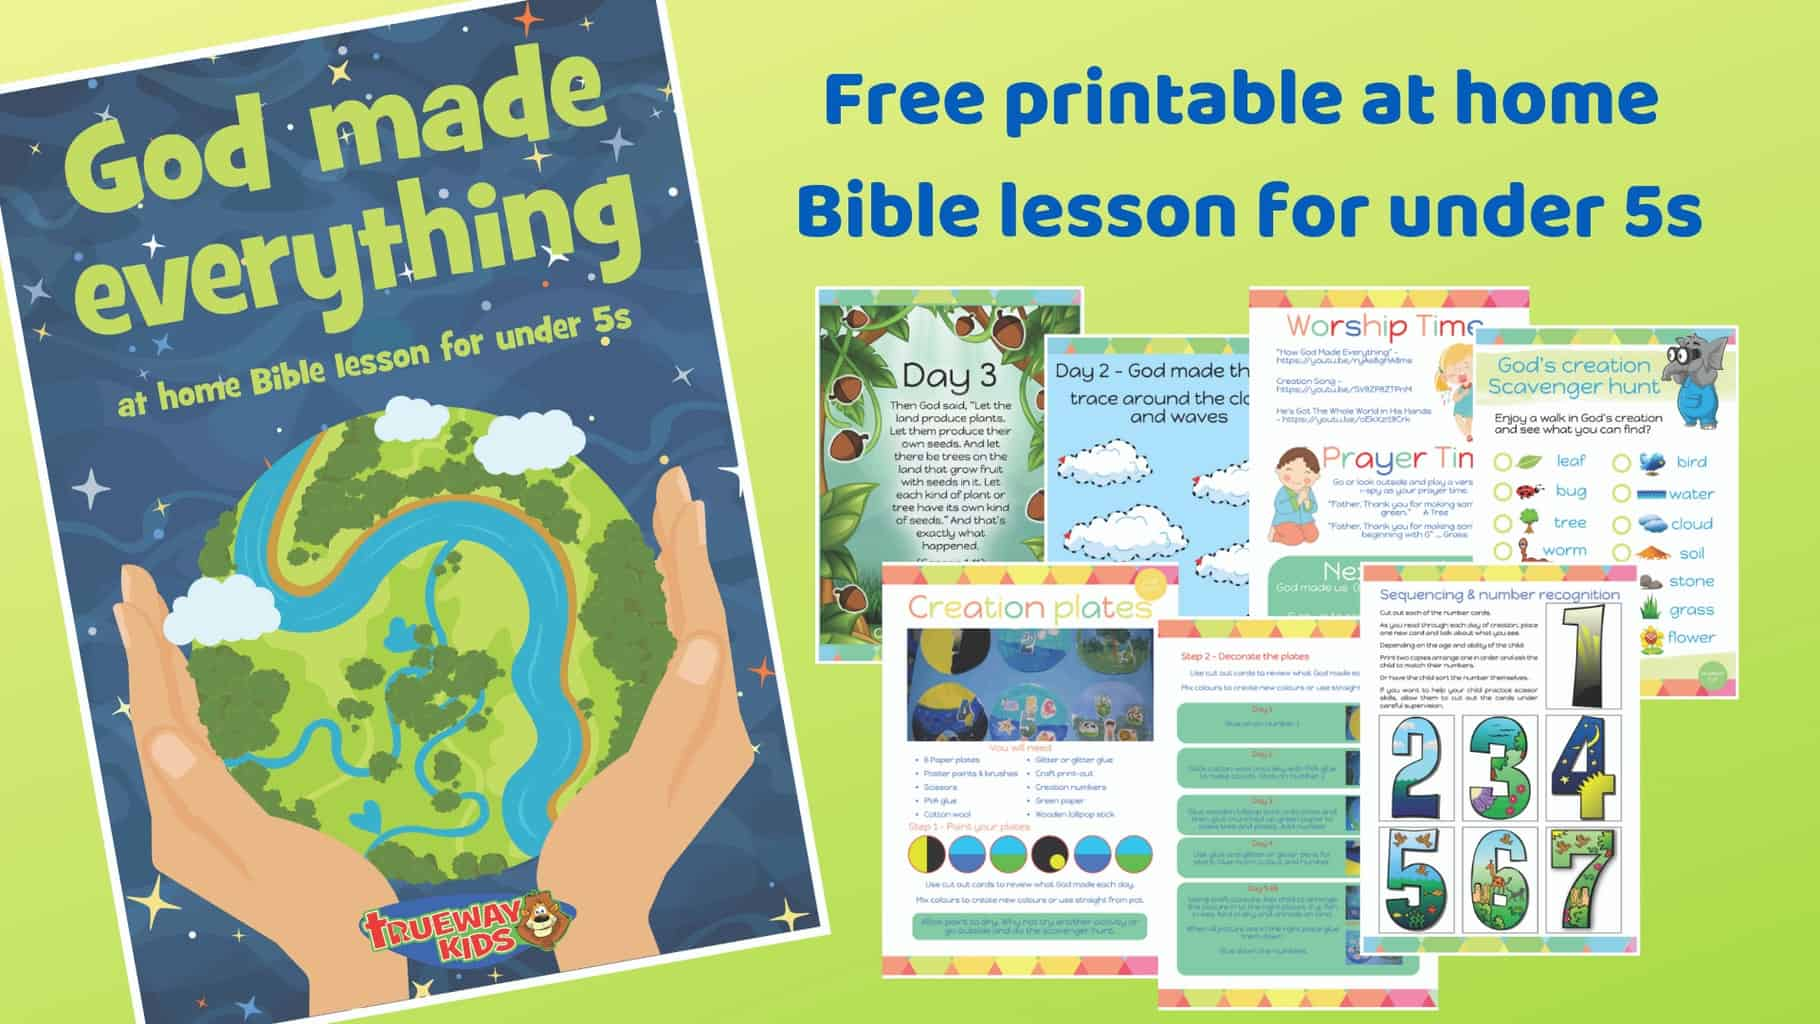 graphic regarding Bible Lessons for Adults Free Printable known as God developed almost everything - Free of charge printable Bible lesson for